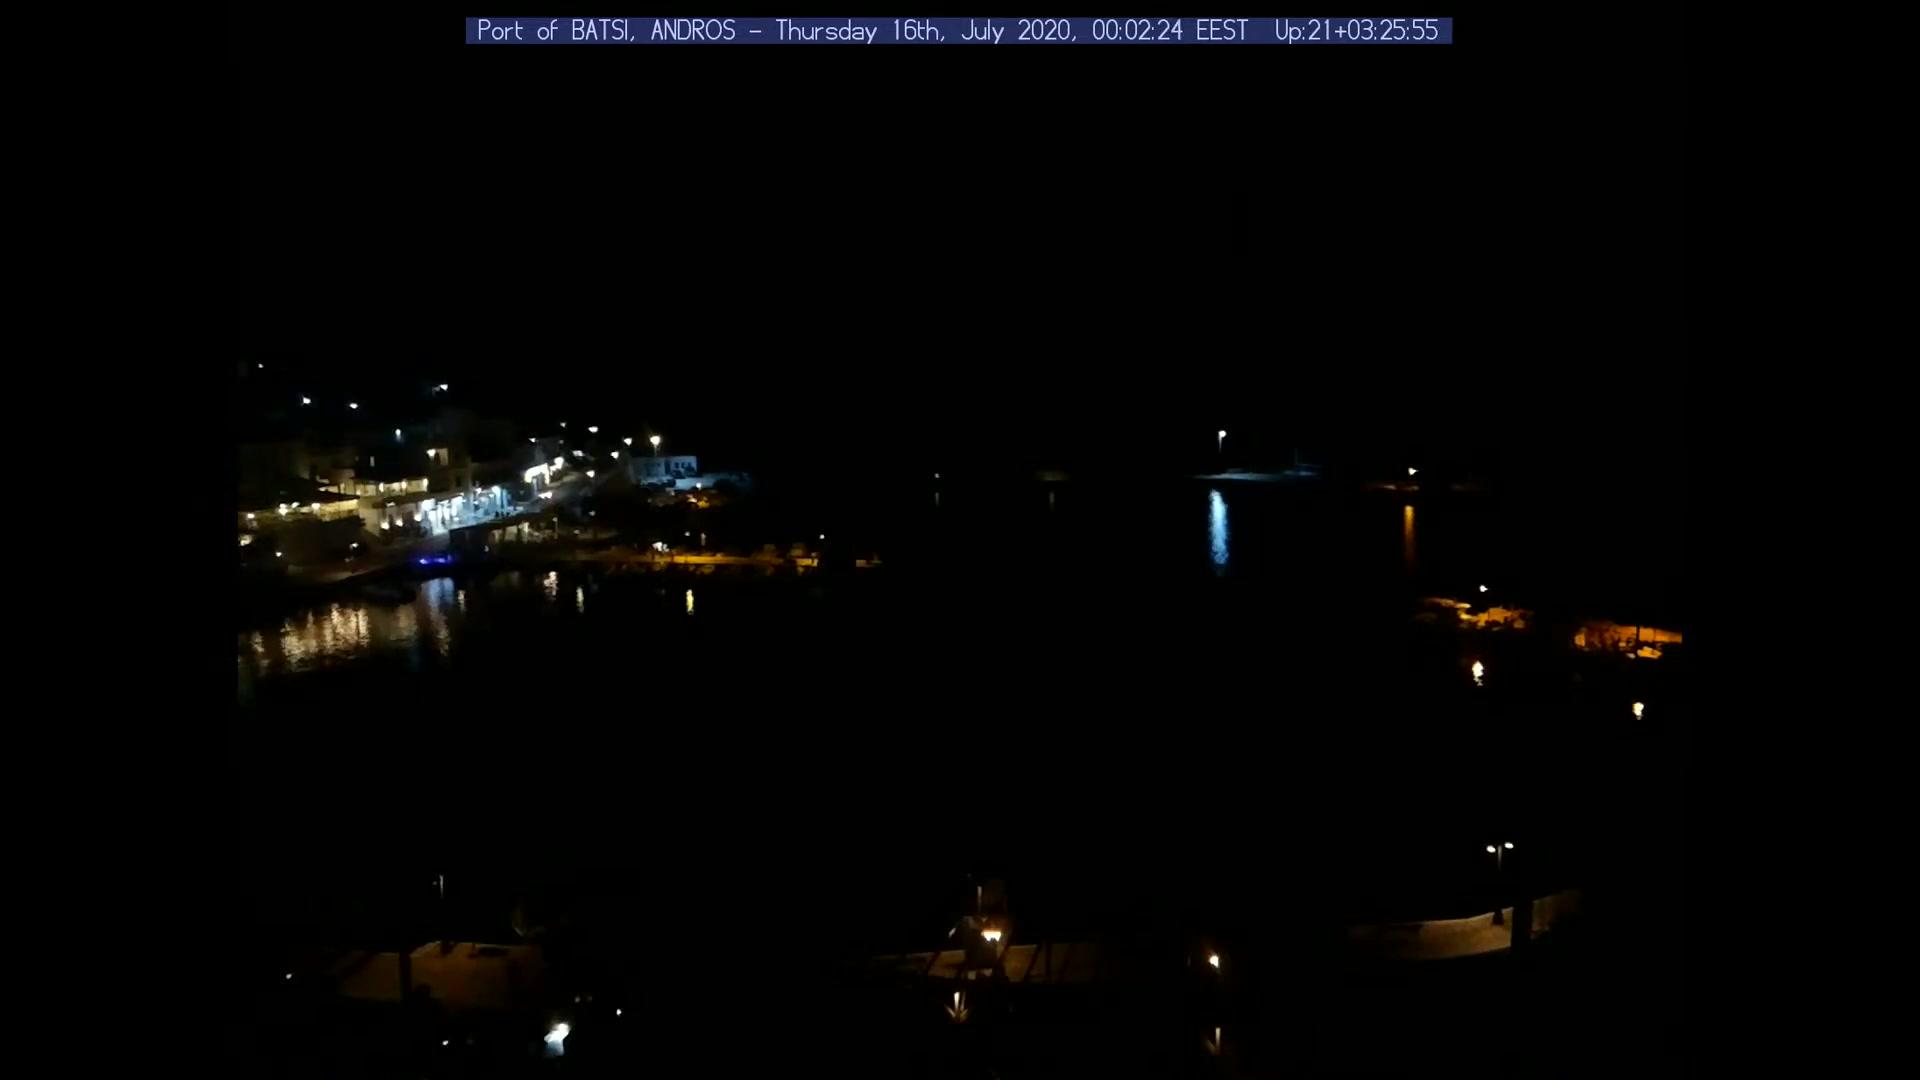 Webcam Batsi › South: Port of − The traditional port of −